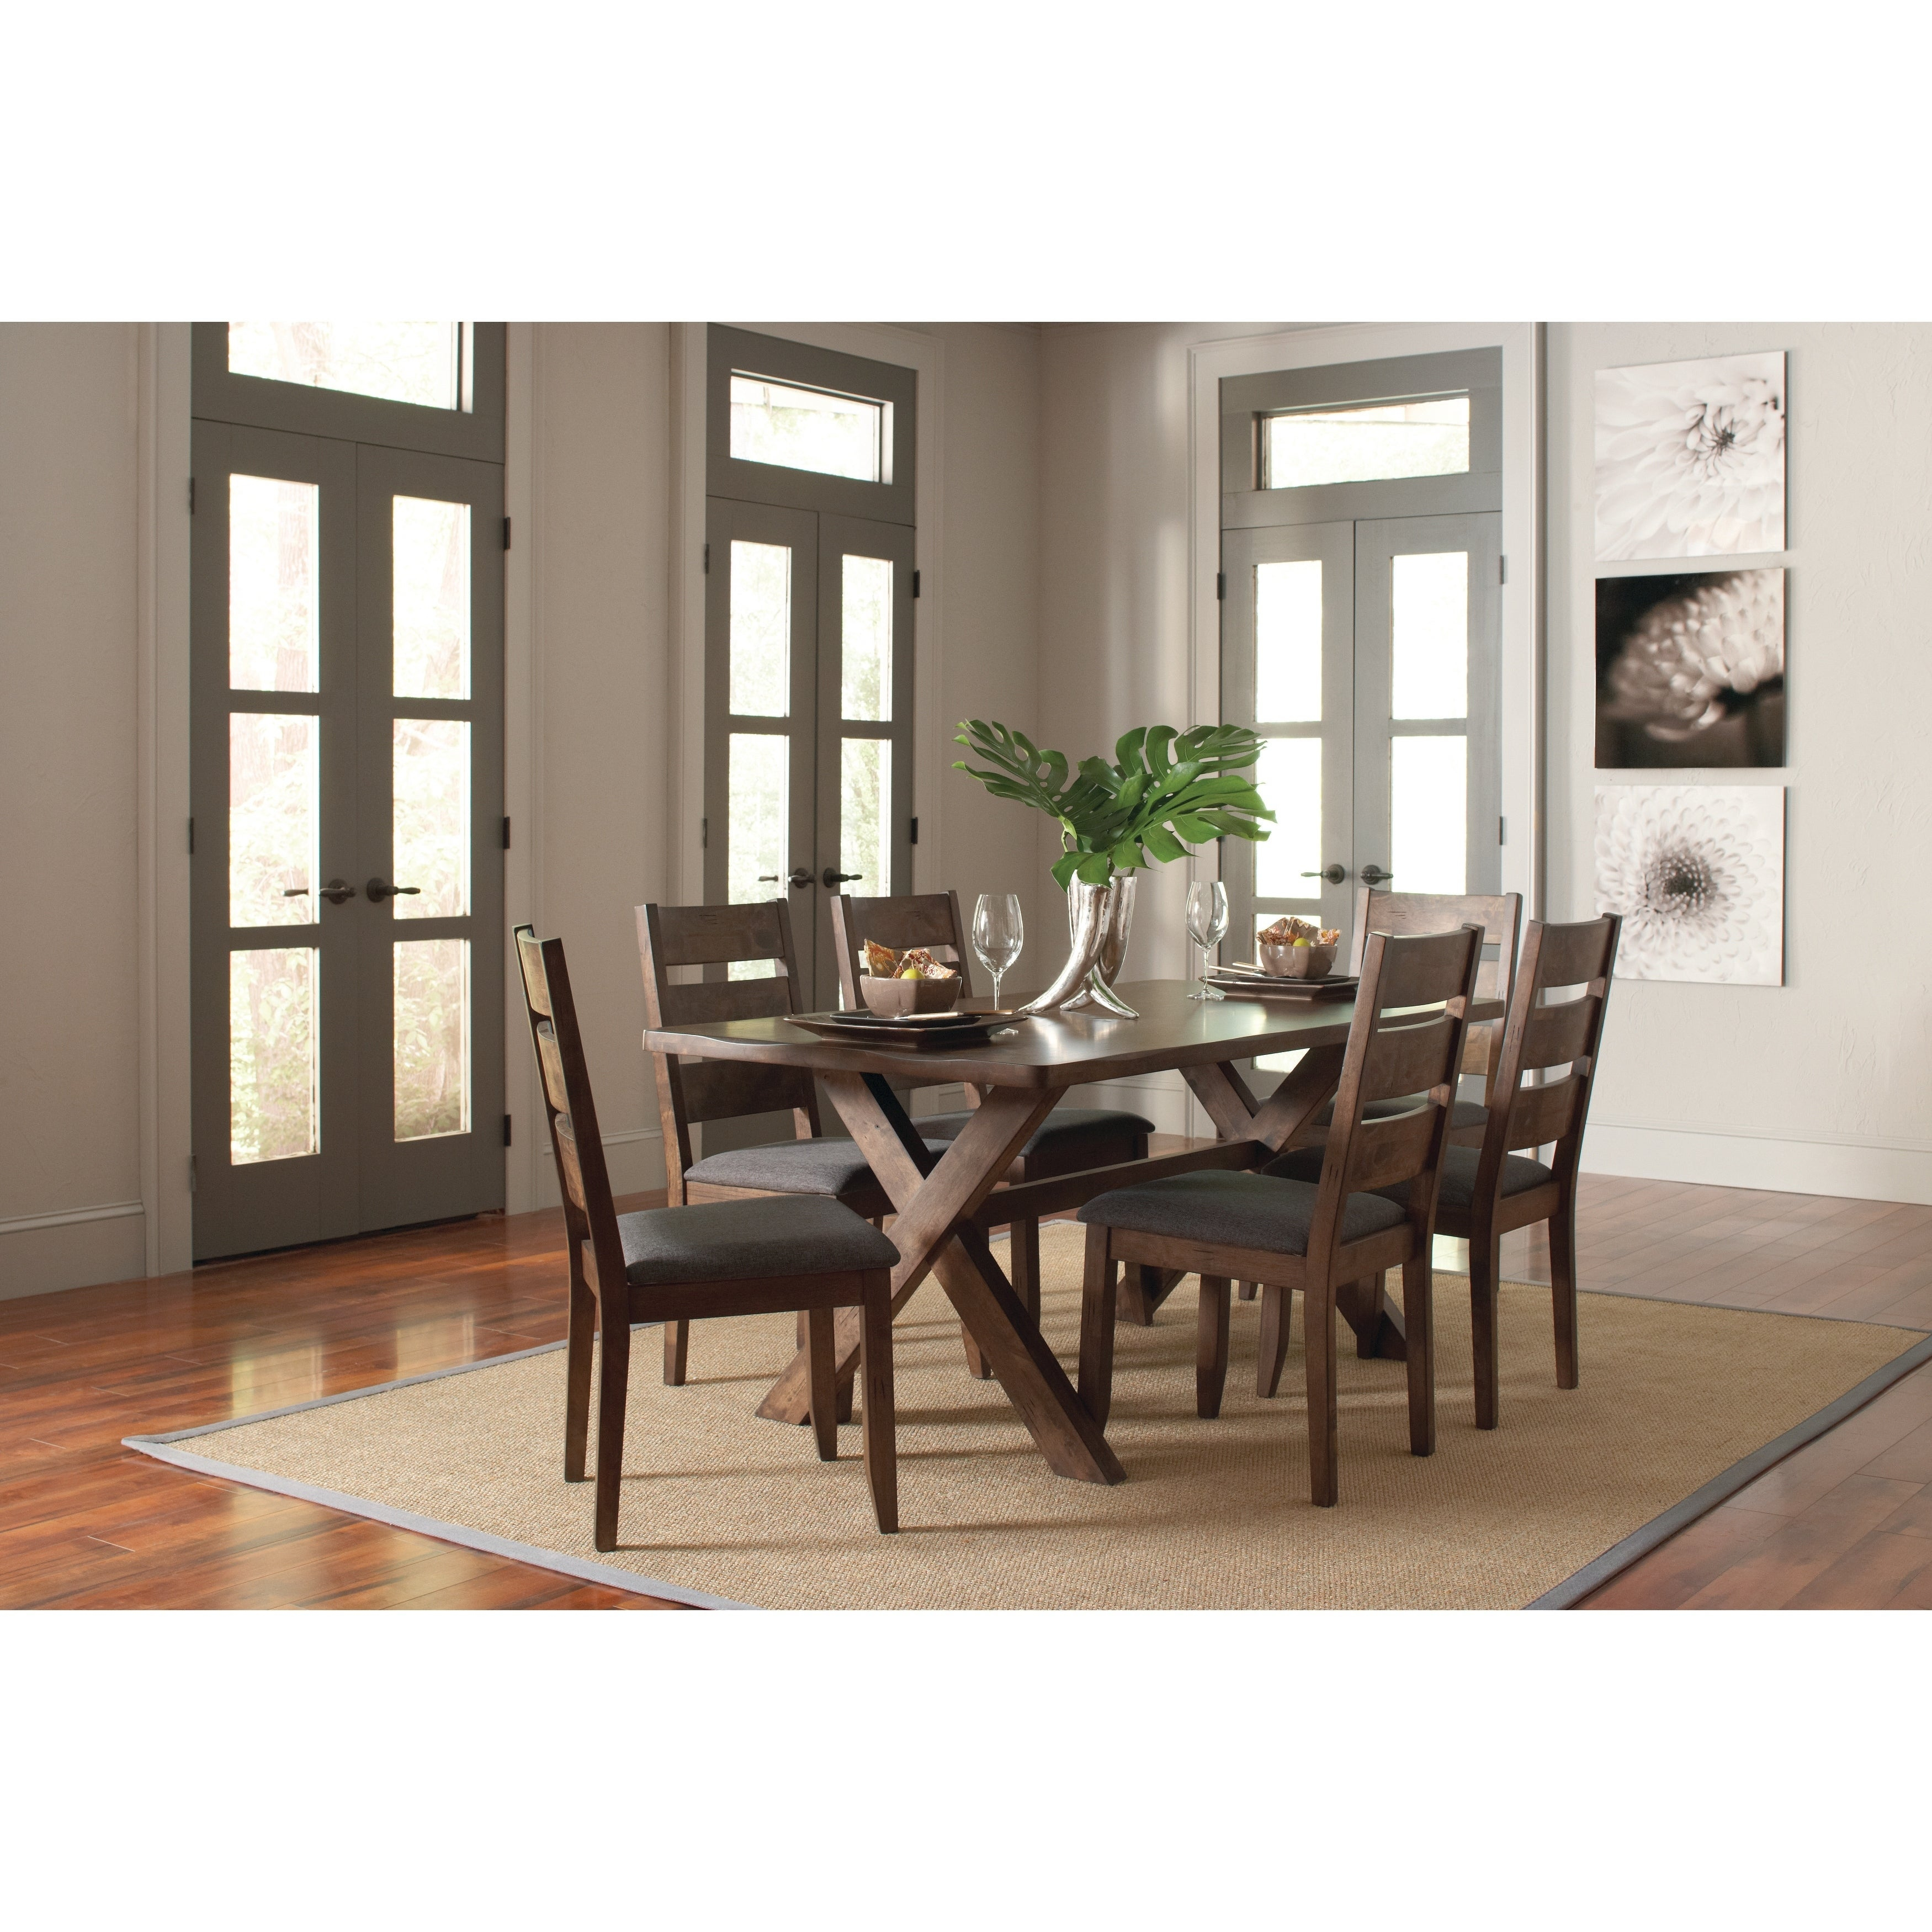 Alston Rustic Knotty Nutmeg Dining Table – Brown Within 2018 Cincinnati 3 Piece Dining Sets (View 14 of 20)